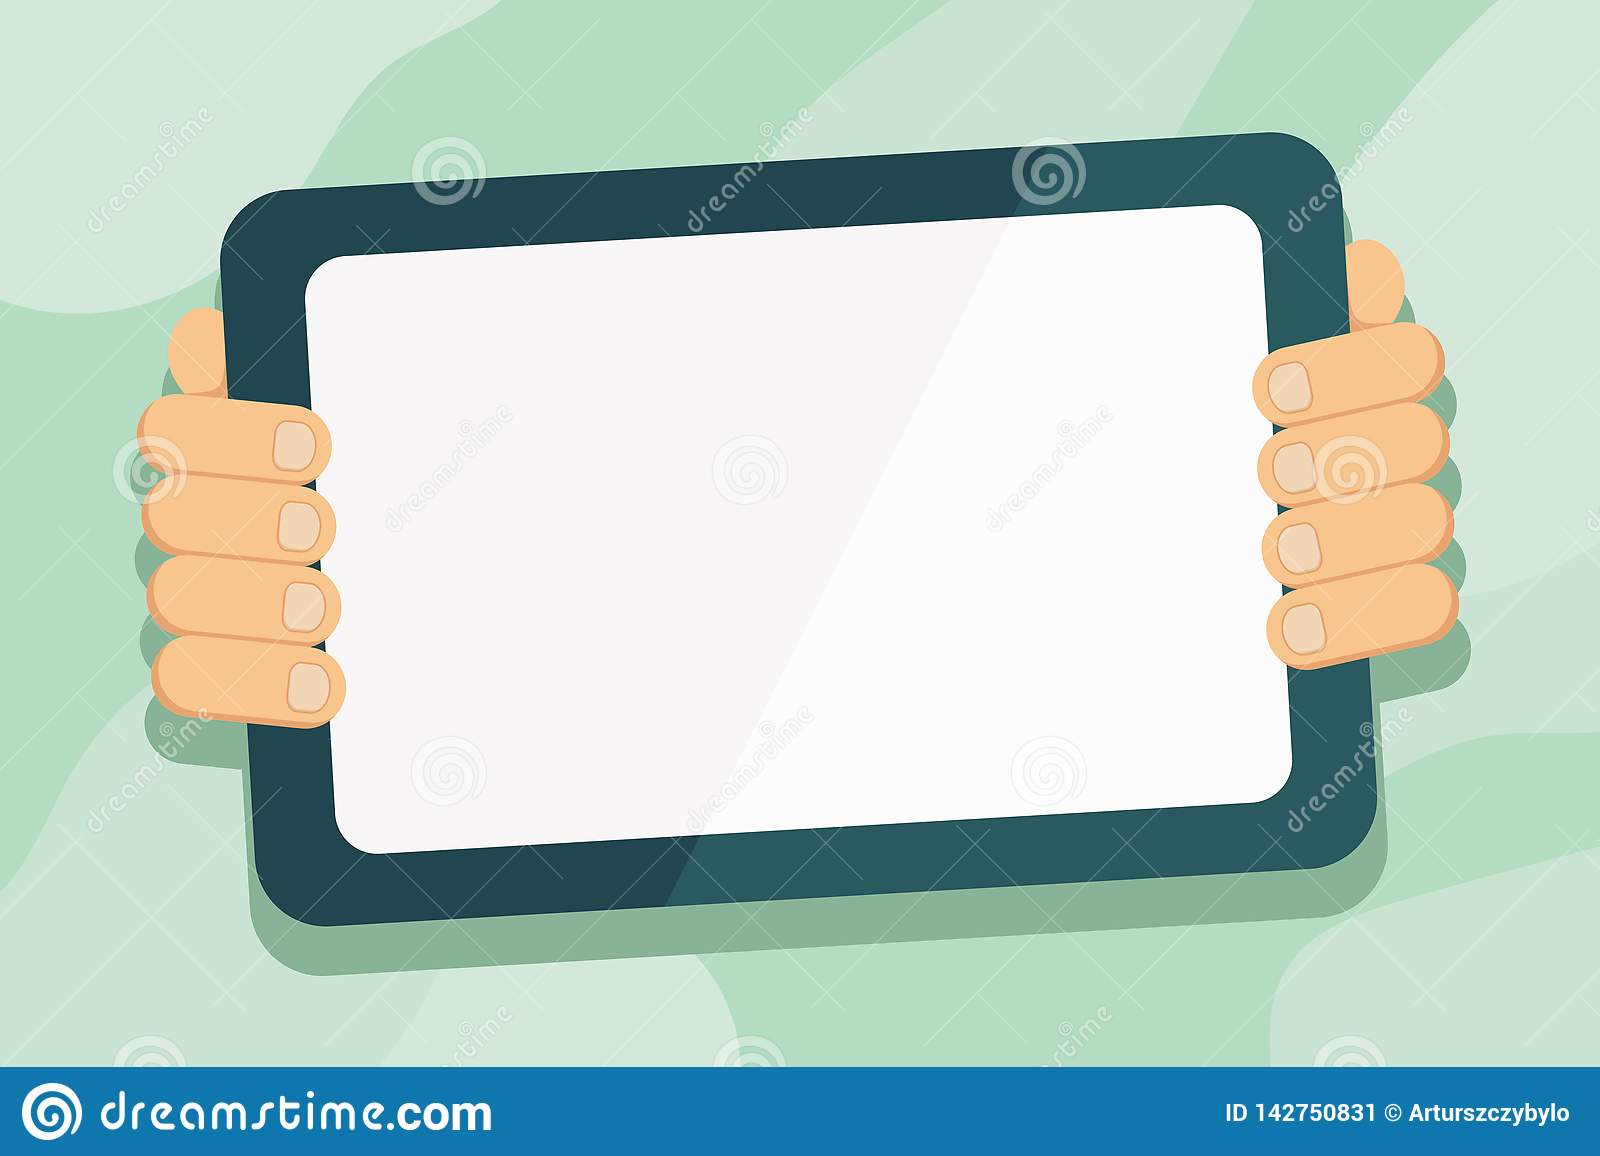 Hand Behind Color Tablet Holding Blank Screen Gadget Facing the Audience. Smartphone with White Touchscreen Handheld